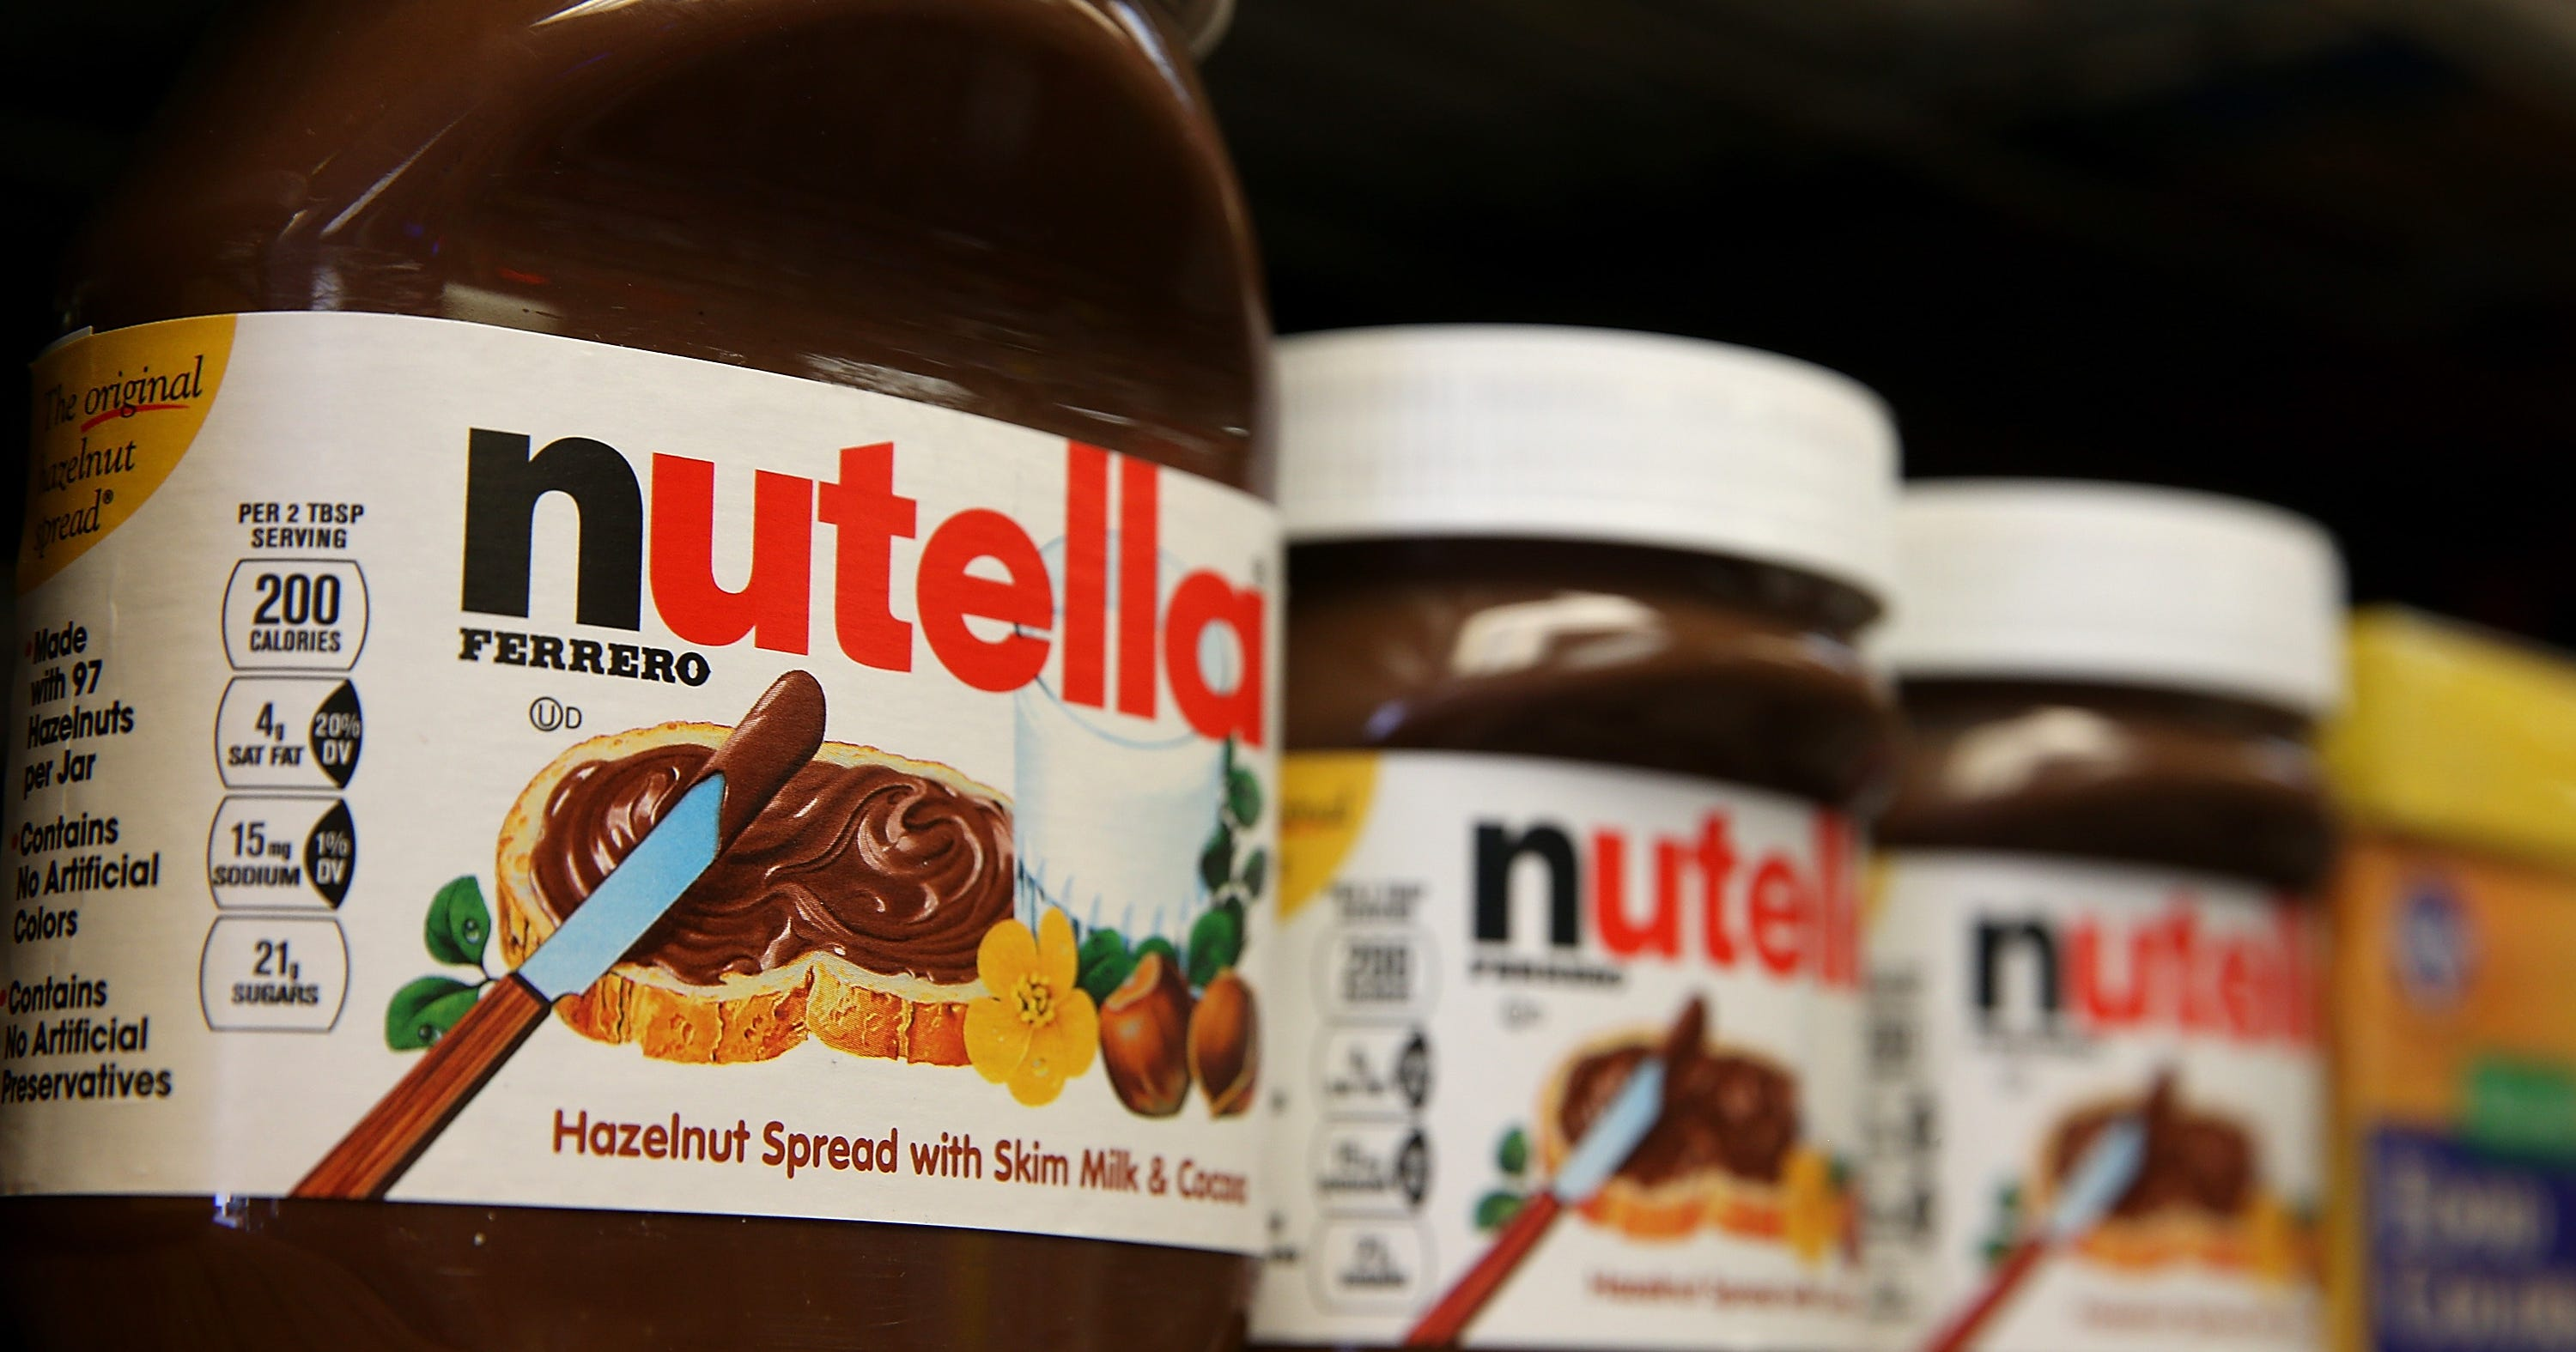 The FDA Wants You to Eat Less Nutella - Nutella Serving Size Change